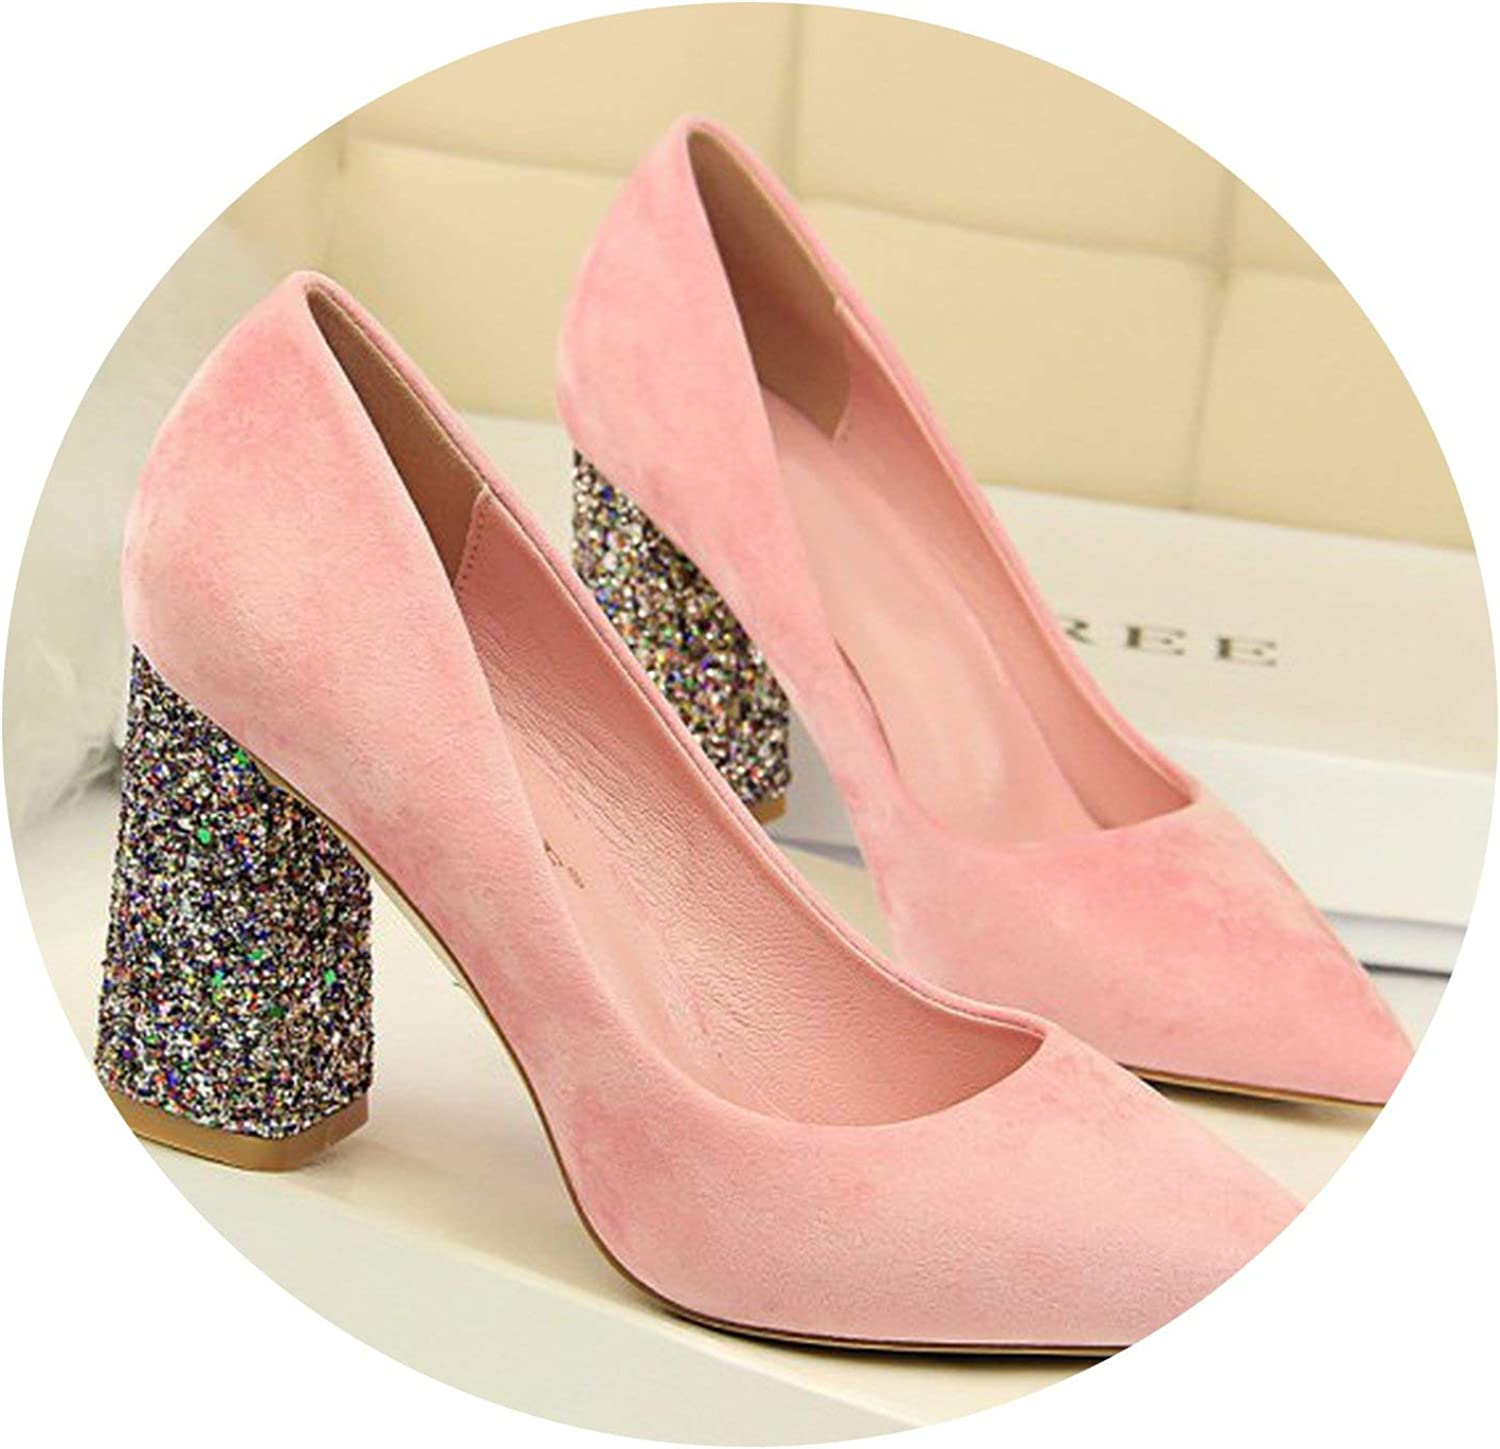 Mr Z Waroom High Heels shoes 2019 Fashion Flock Pointed Toe Women Shallow Pumps Bling Thick Heel shoes Party Wedding Pumps